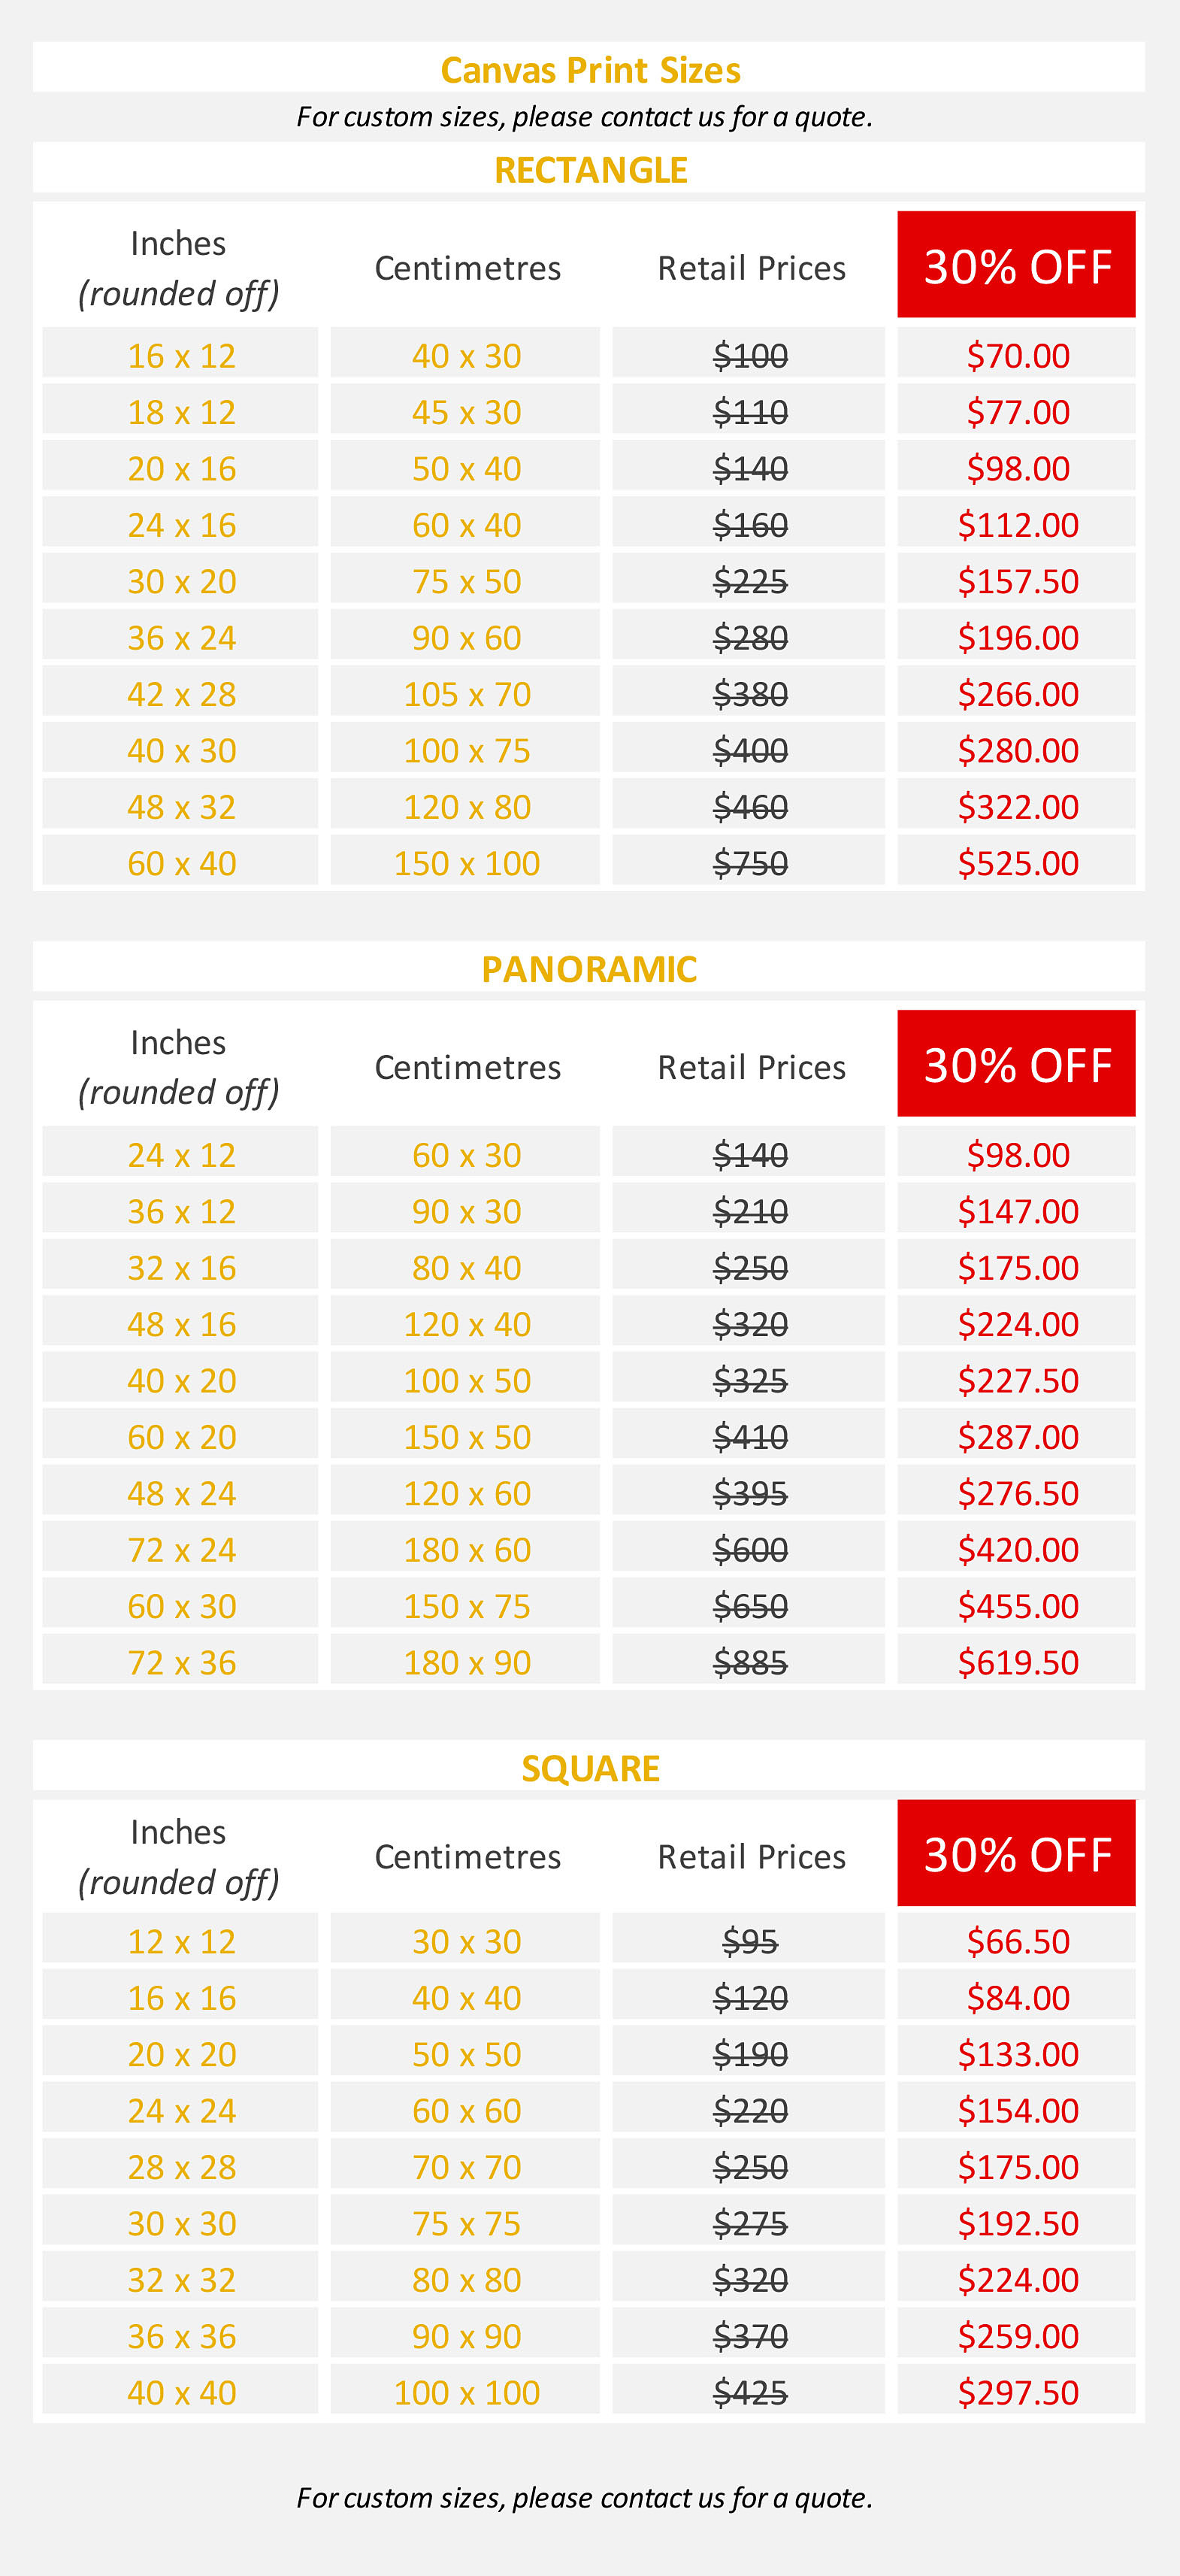 Deluxe Art EOFY SALE 04Jun19 Canvas Print Prices.v2